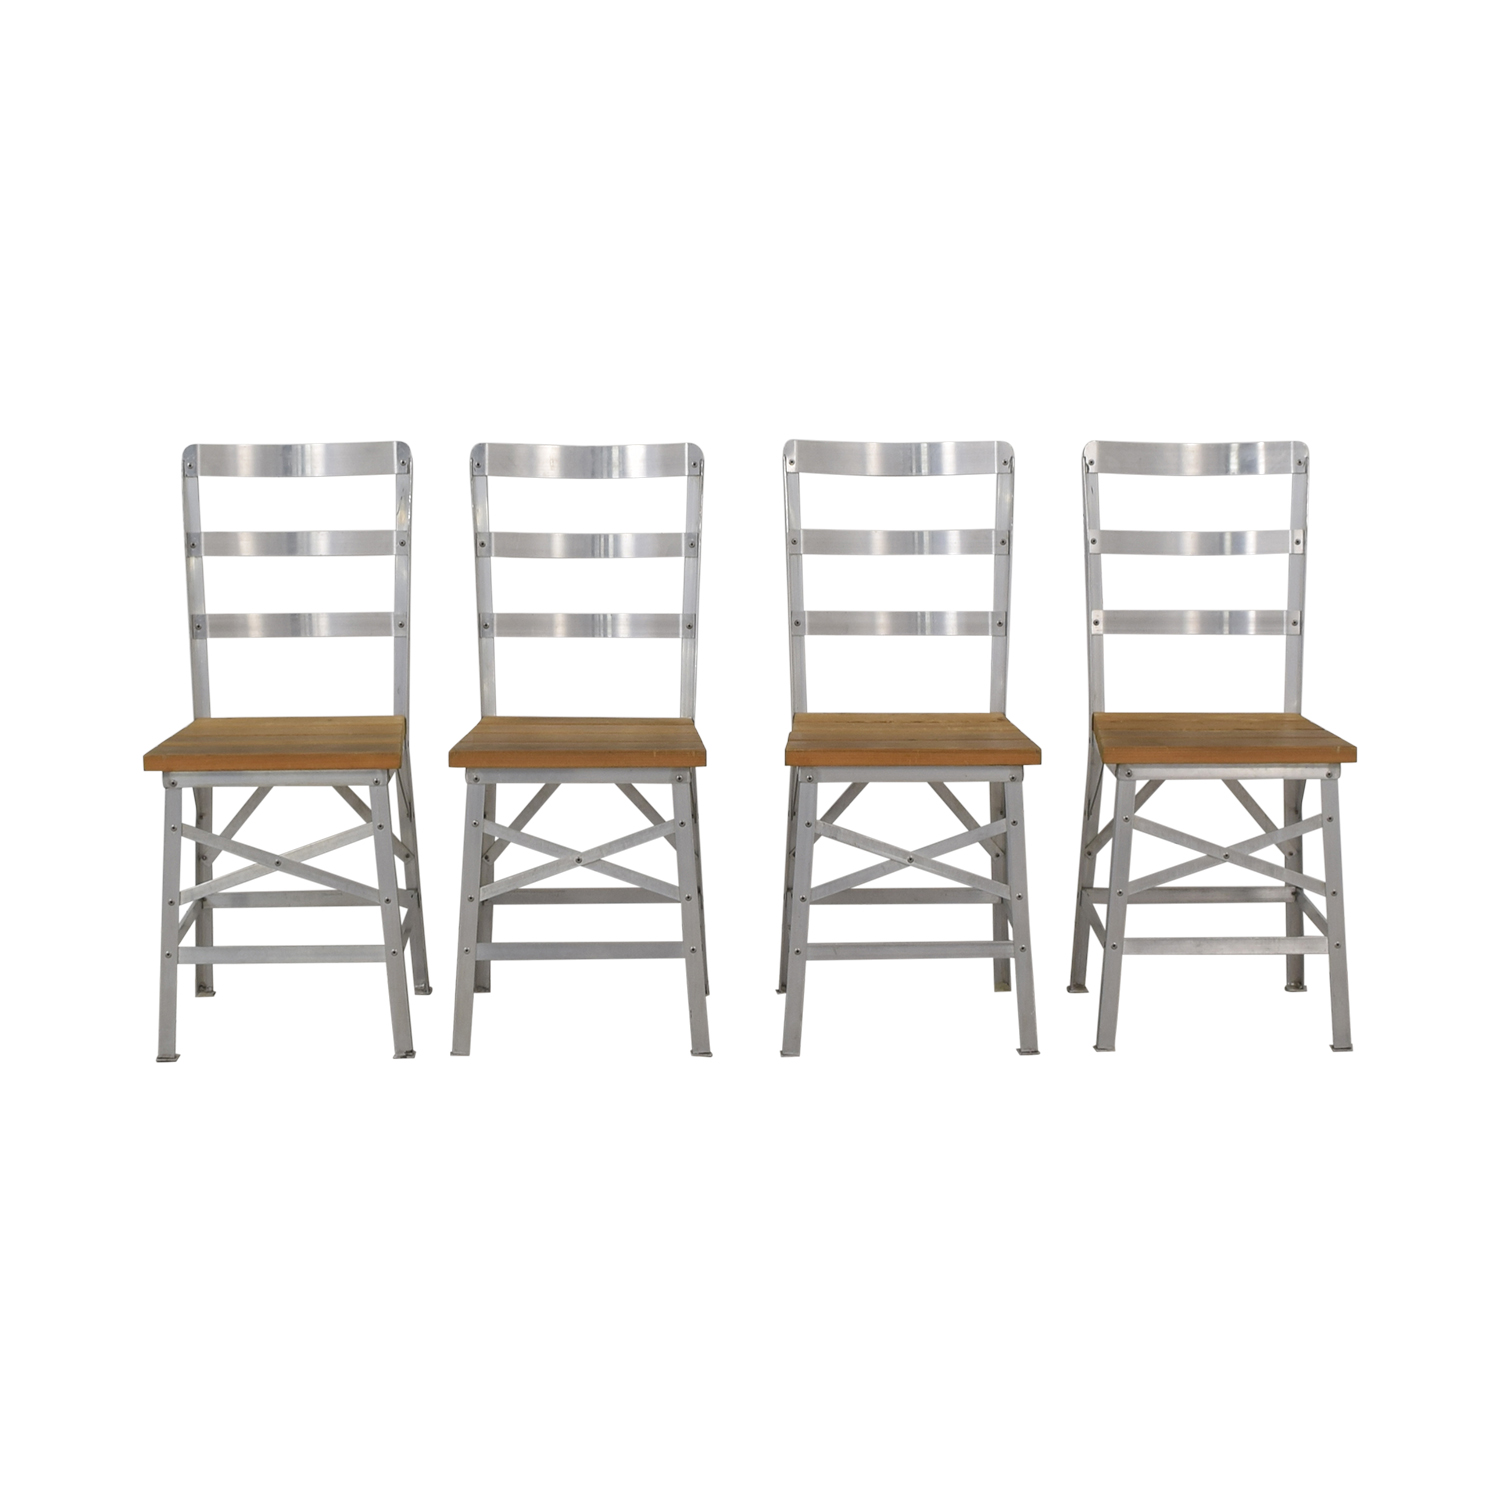 Groundwork Home Groundwork Home Aluminum Dining Chairs nyc